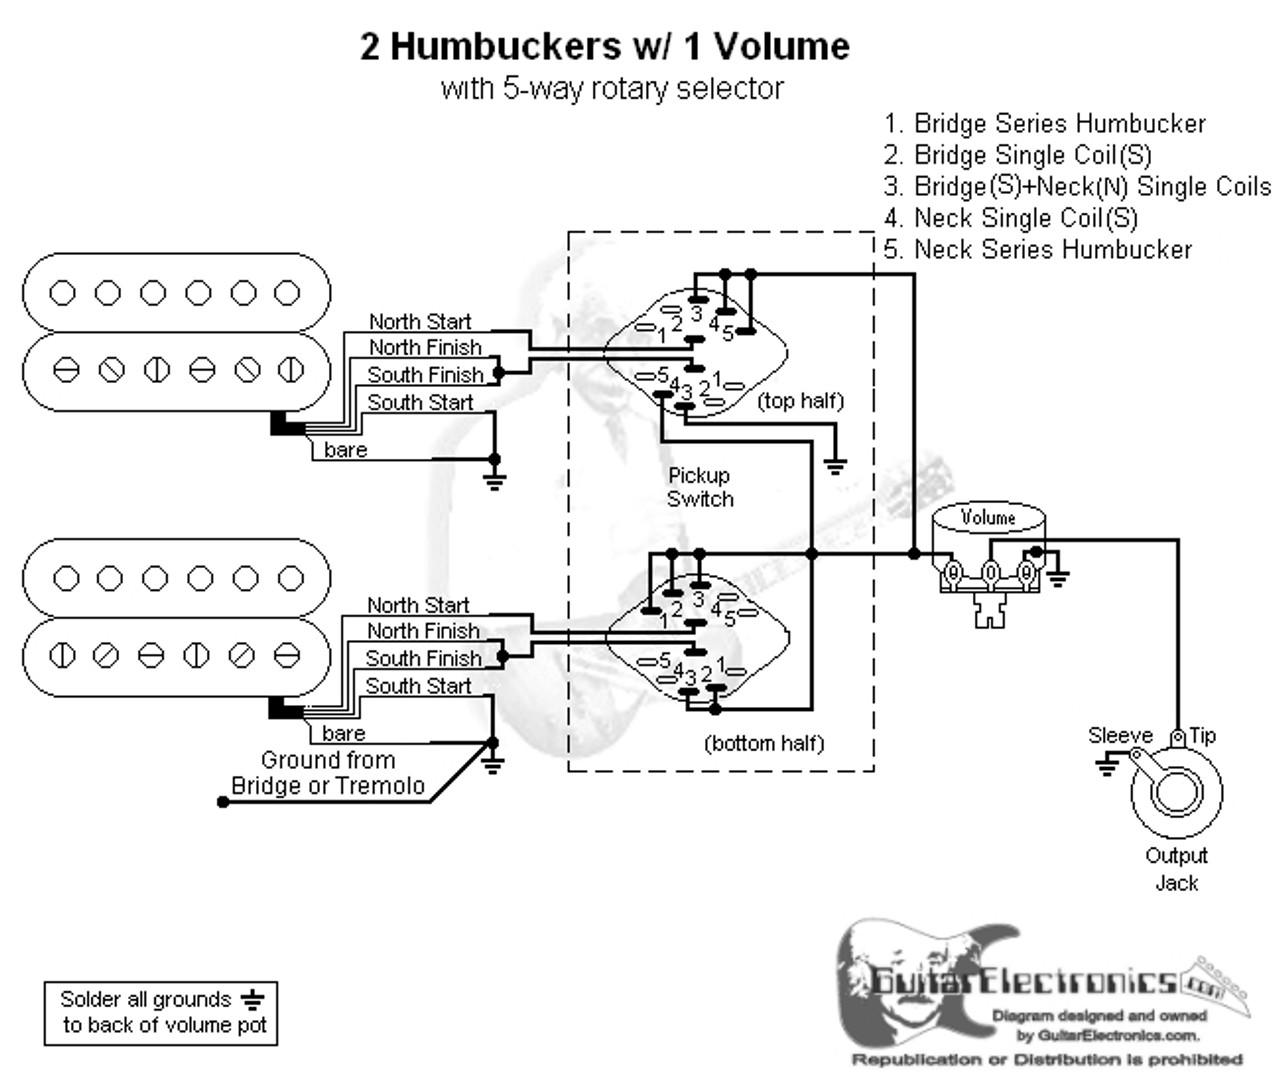 medium resolution of rotary coil wiring diagram wiring diagrams wni 2 humbuckers 5 way rotary switch 1 volume 00